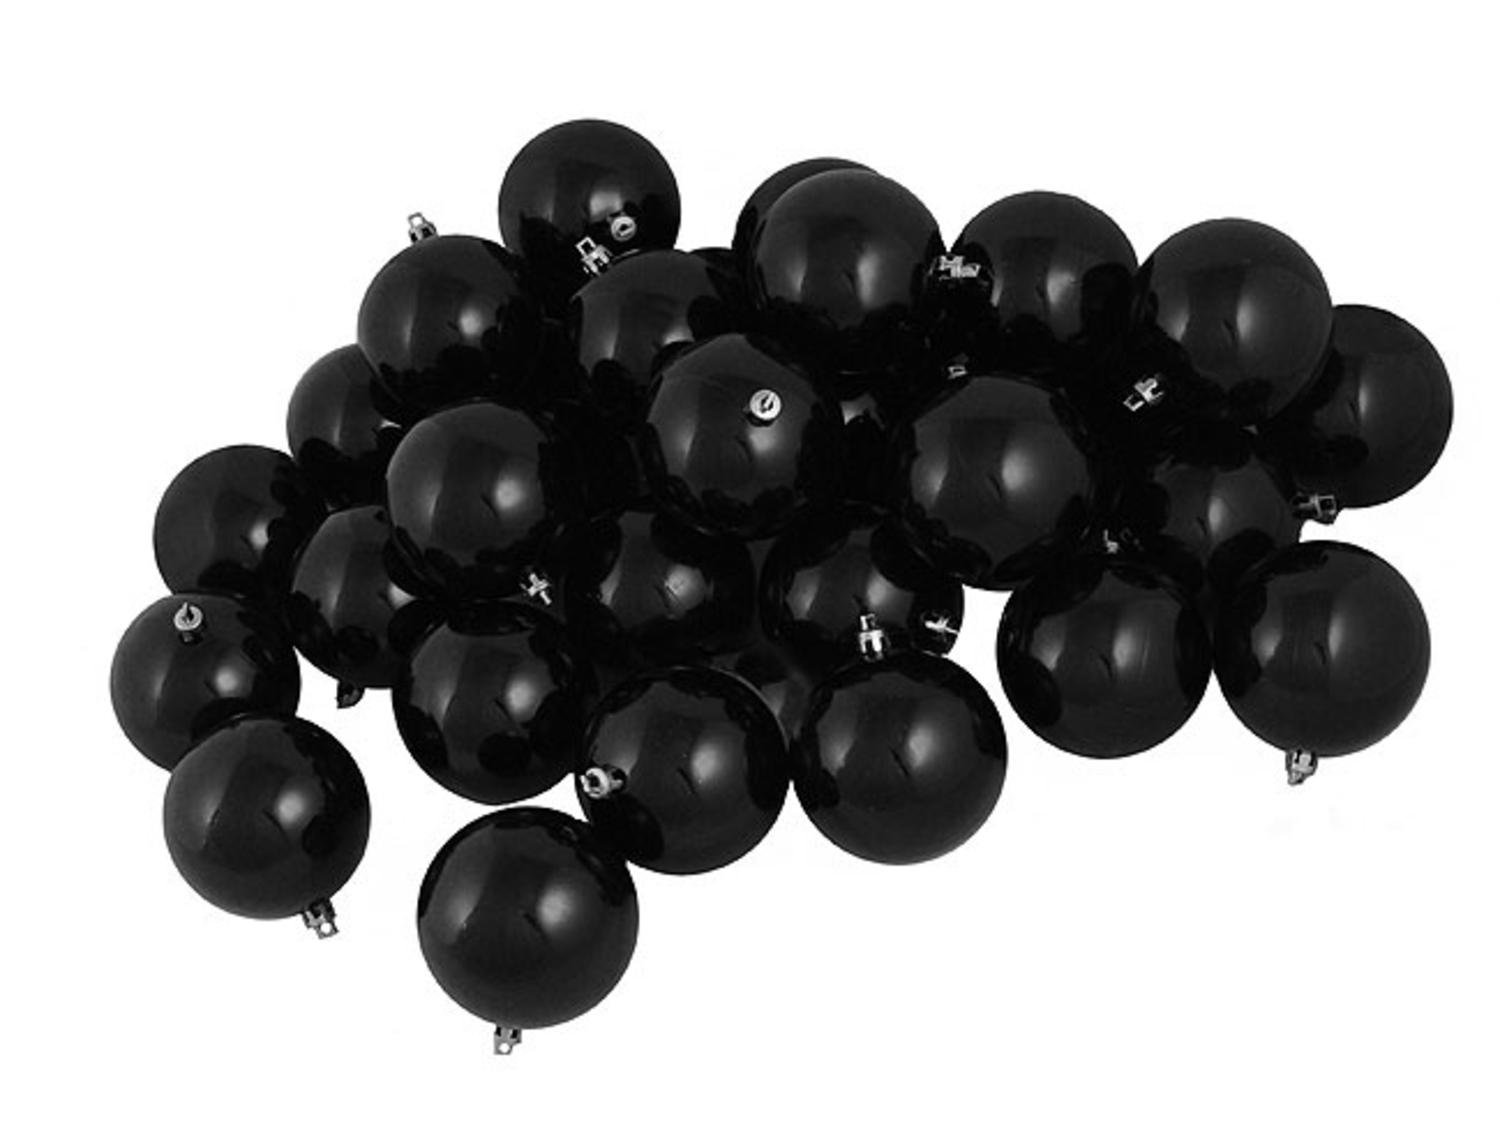 Northlight 32 Count Shatterproof Shiny Jet Black Christmas Ball Ornaments, 3.25''